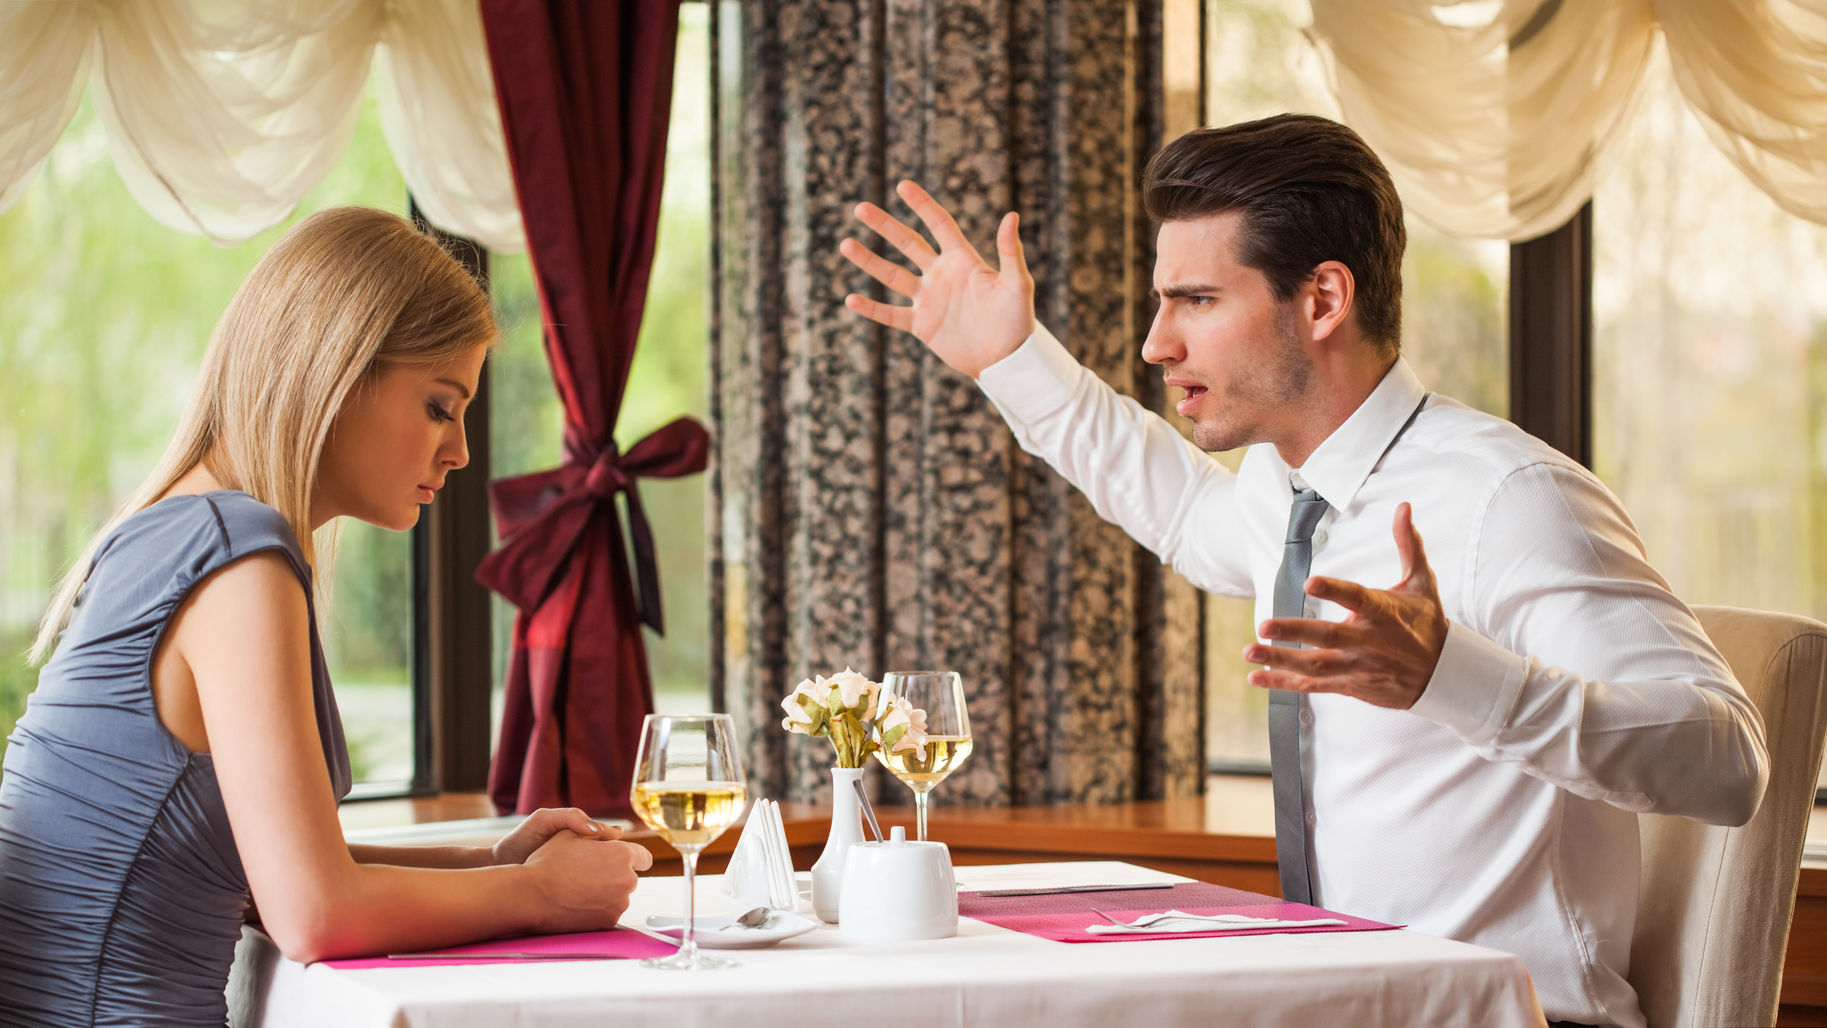 image-couple-at-restaurant-anger-fighting-in-public